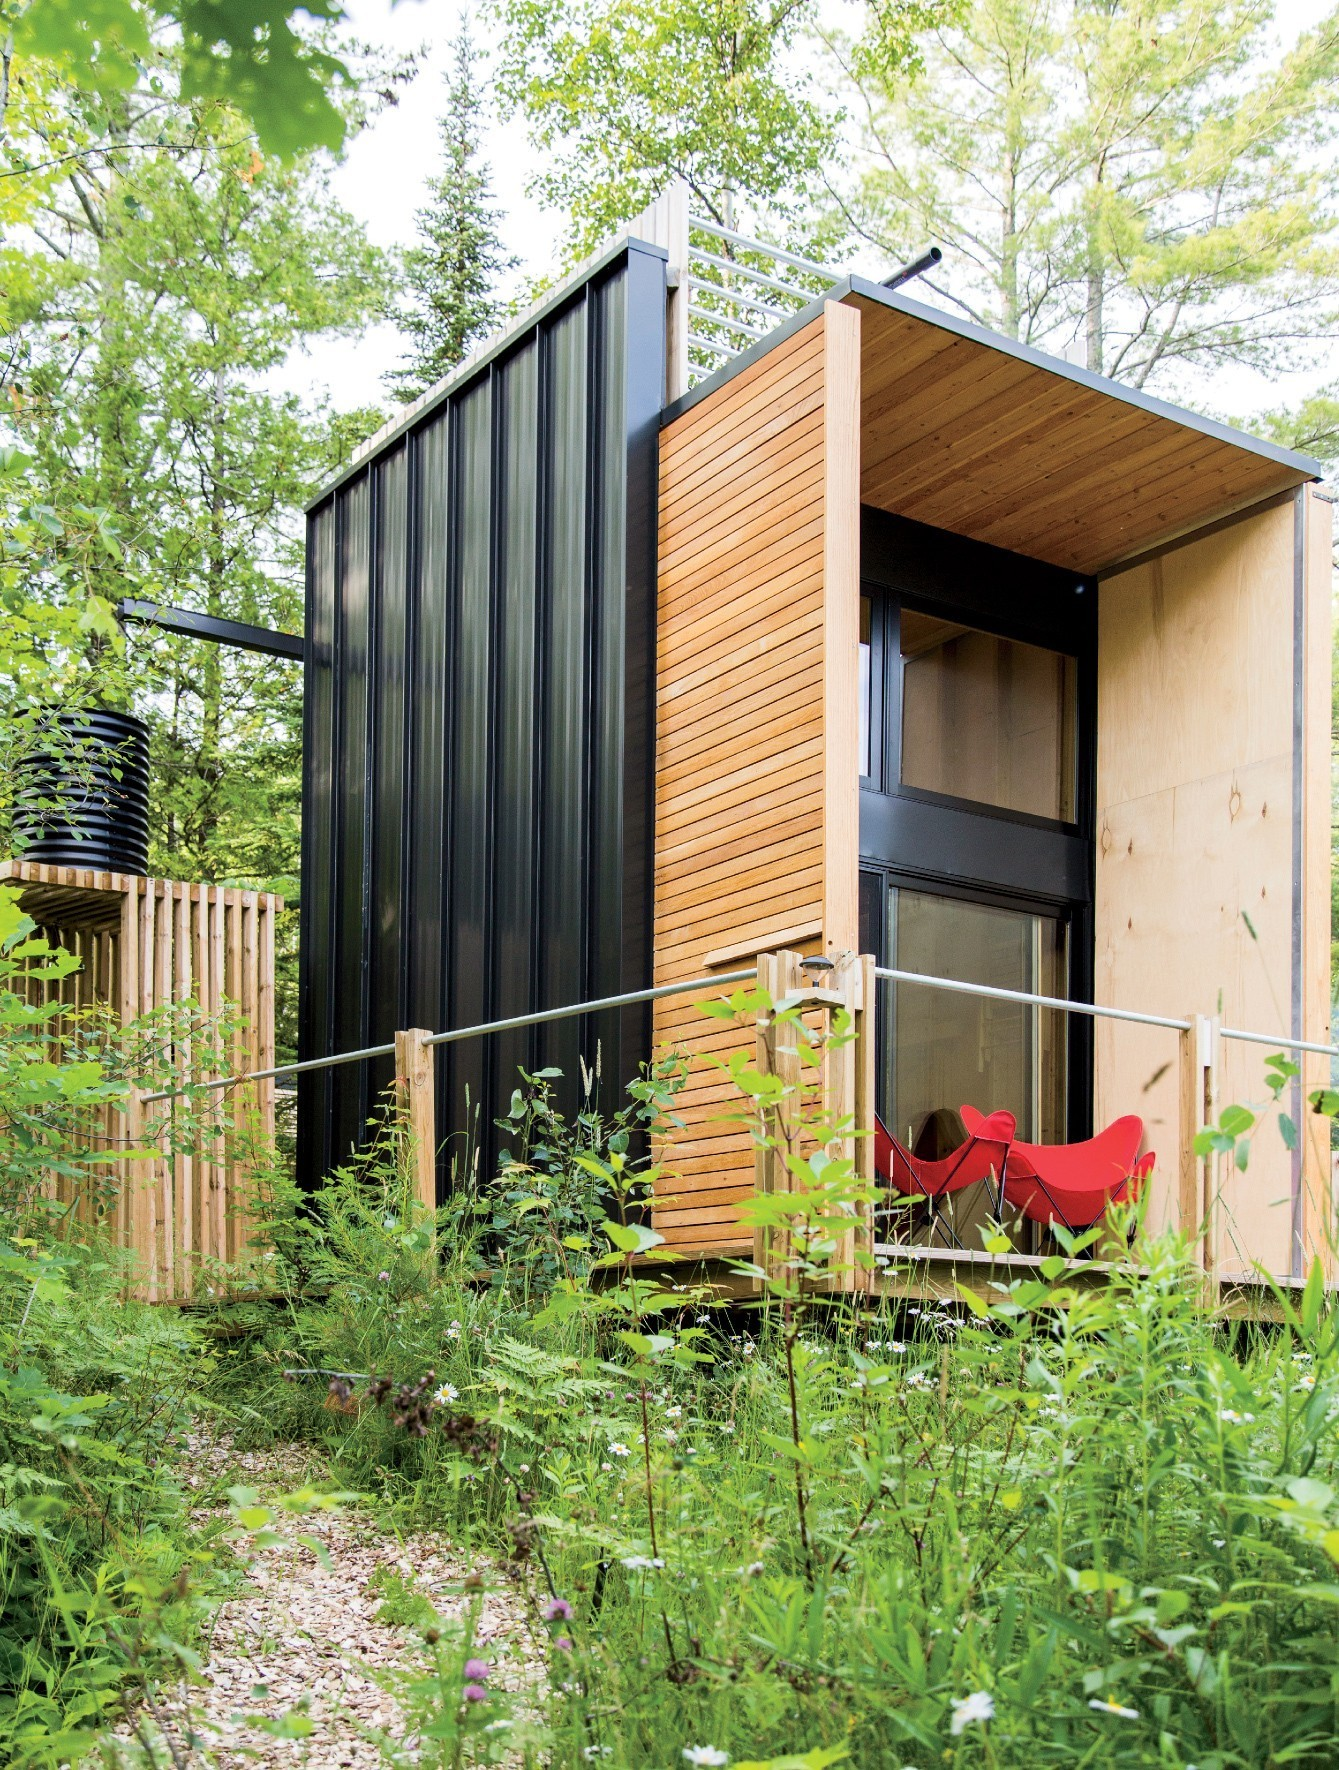 Articles about forest retreat combines small living camping experience on Dwell.com